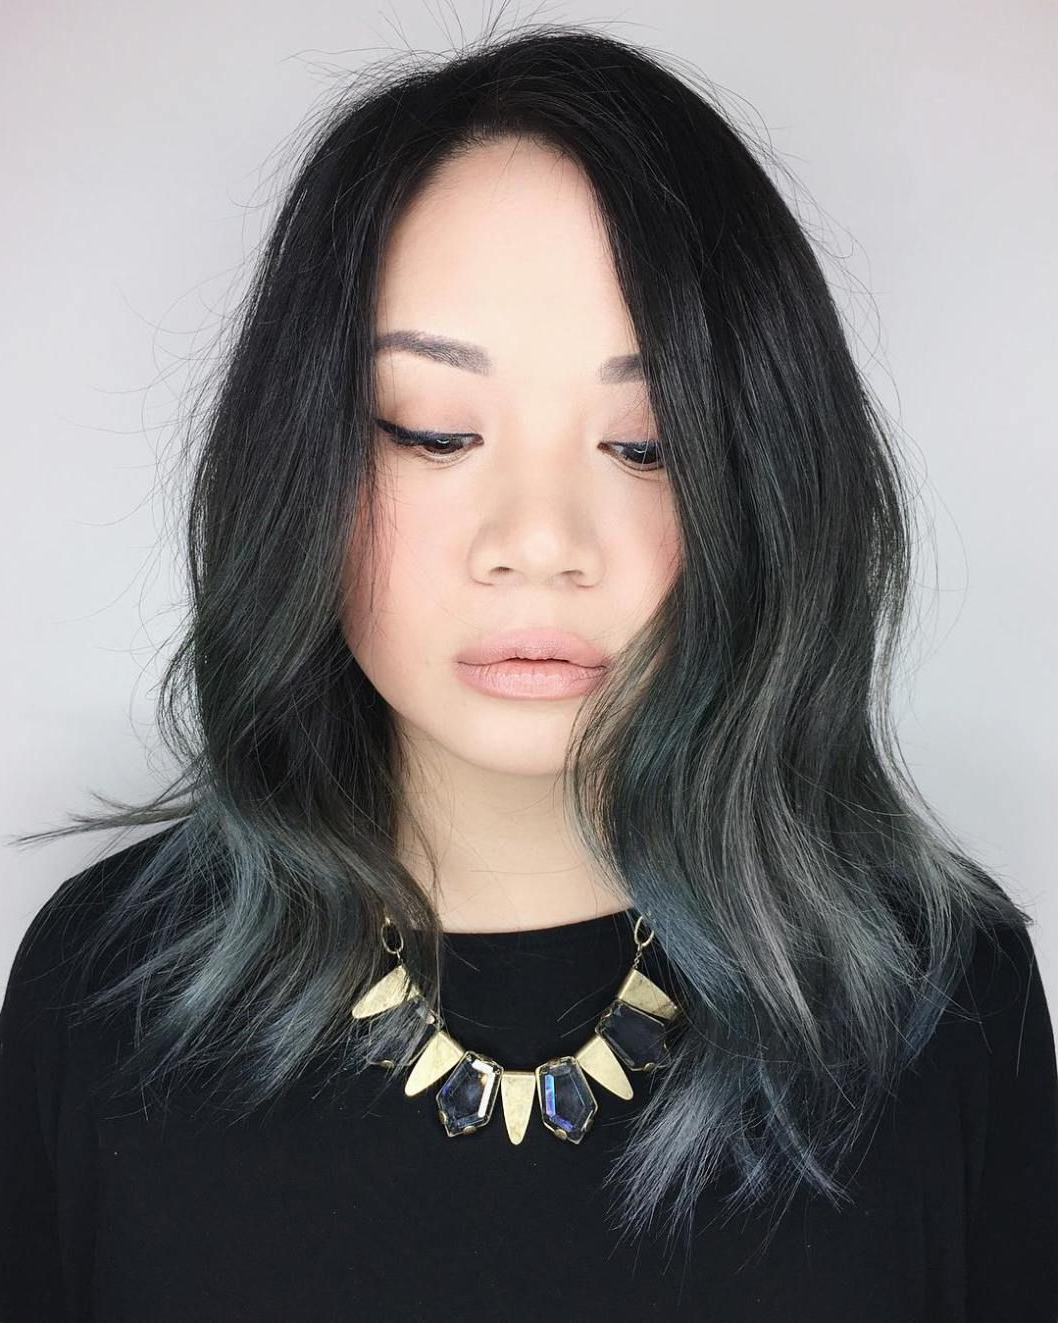 2020 Cool Silver Asian Hairstyles In 30 Modern Asian Hairstyles For Women And Girls (View 8 of 20)